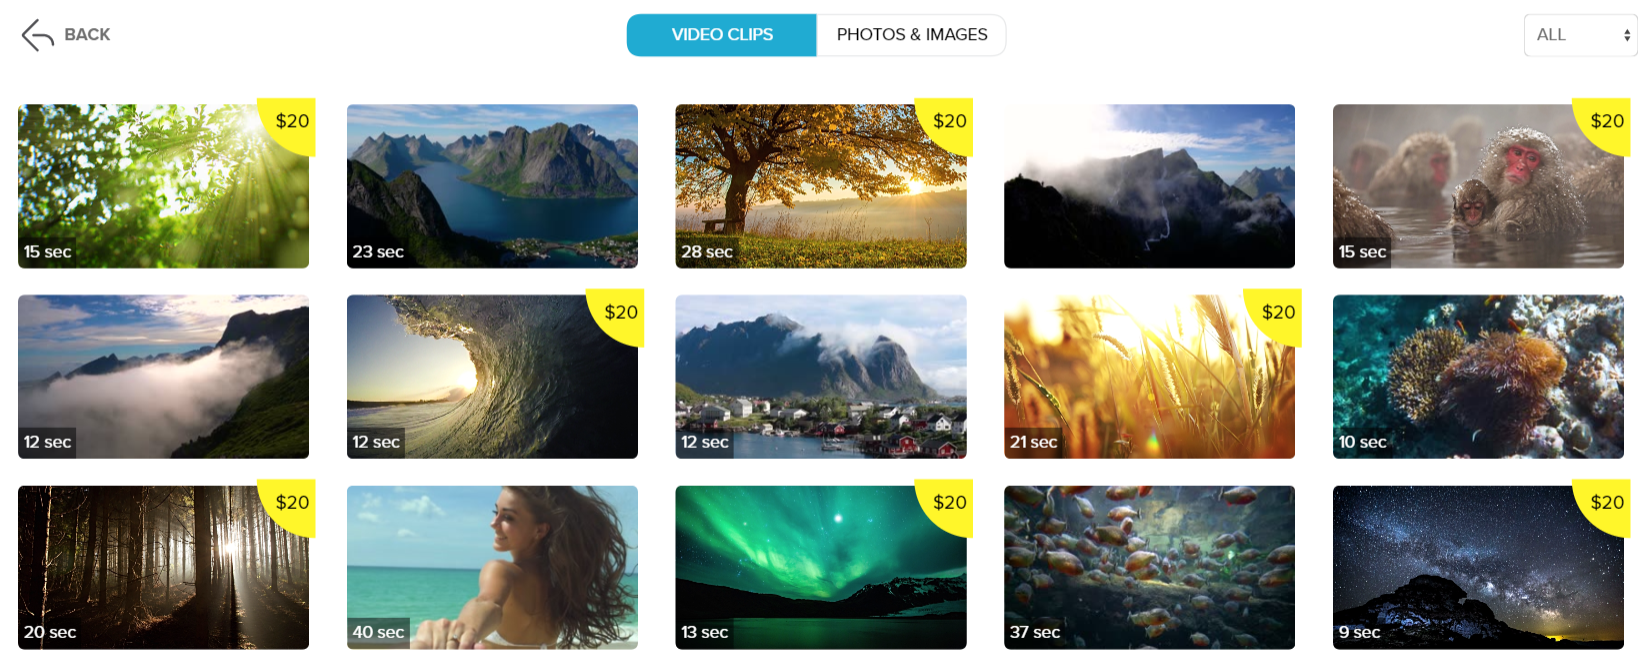 Stock video library wave.vide